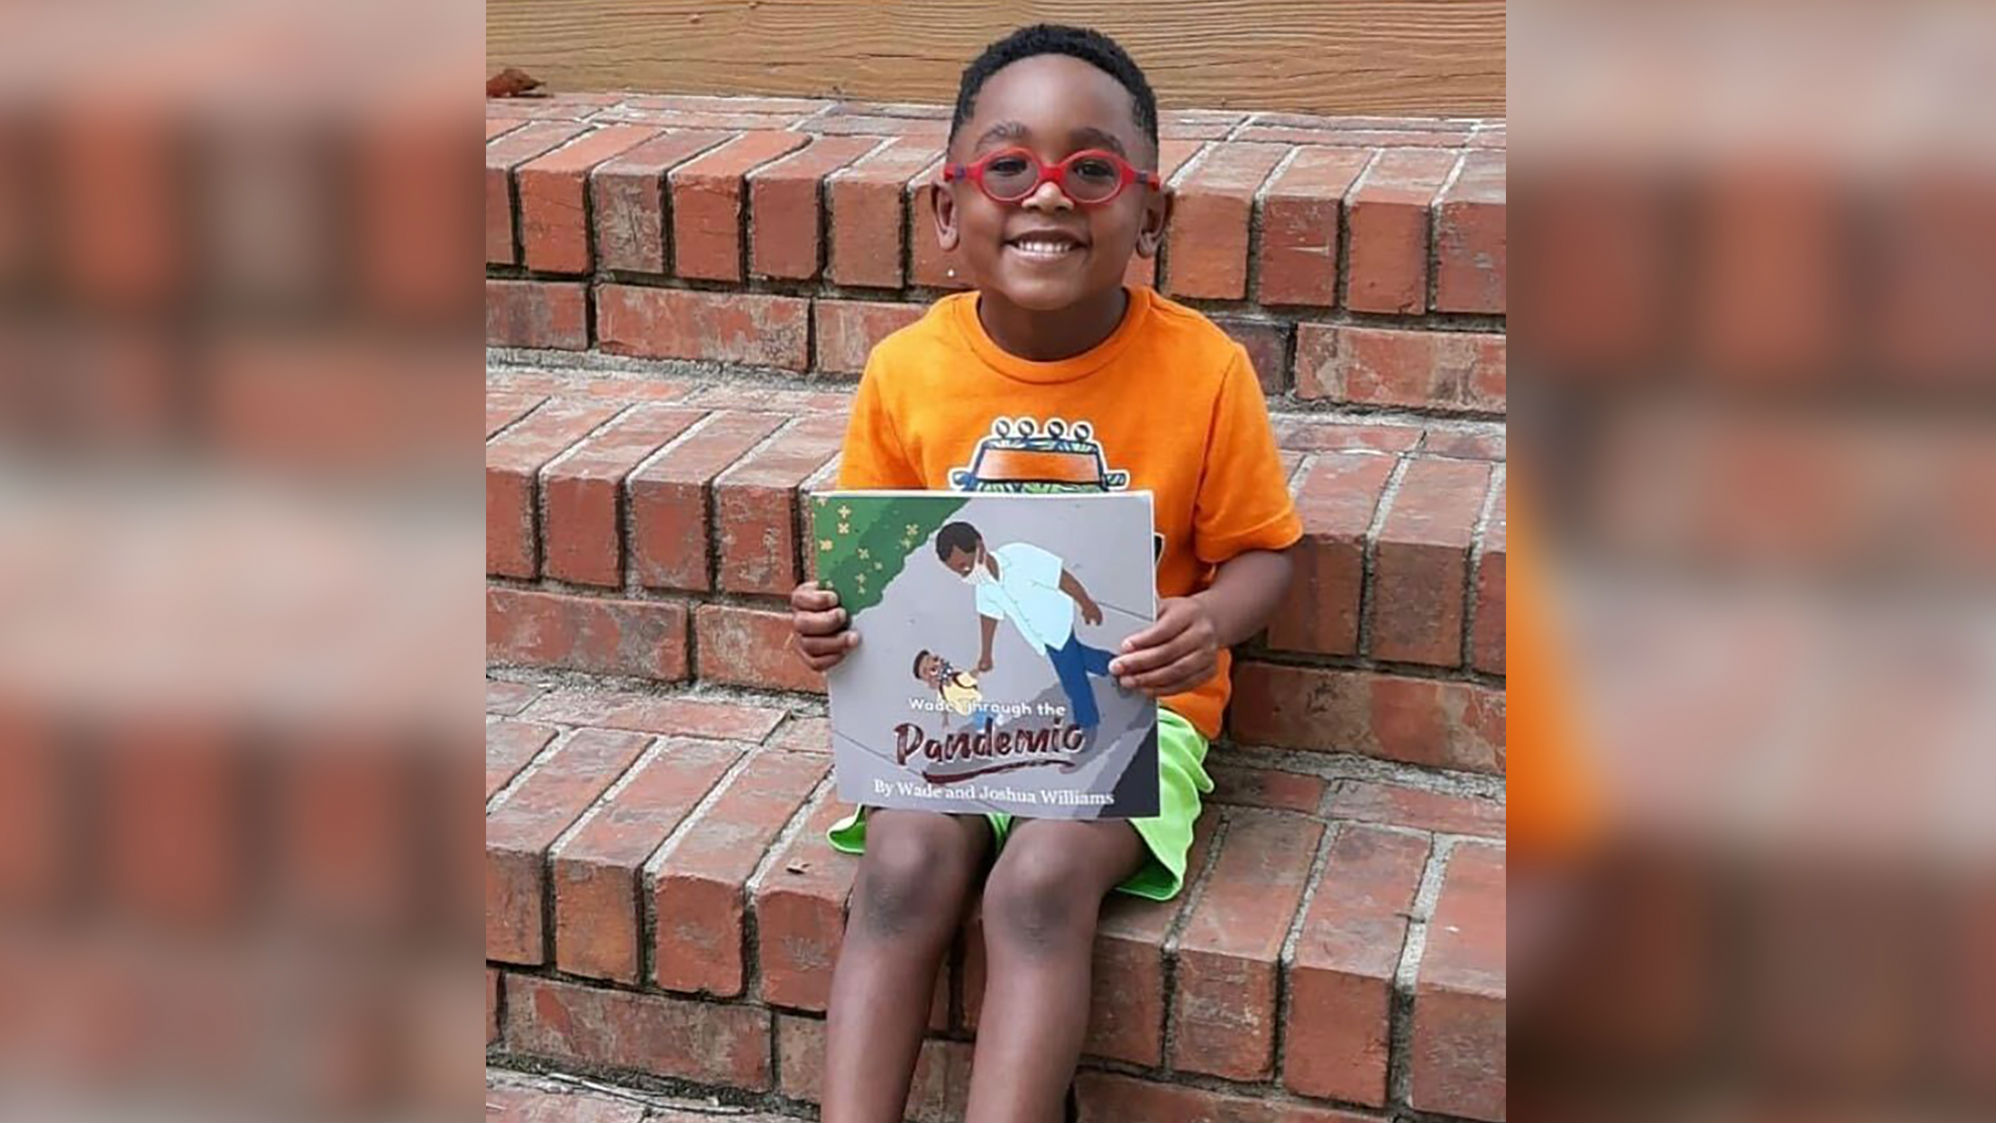 This 5-year-old wrote a book to help kids battle the stress of the coronavirus pandemic